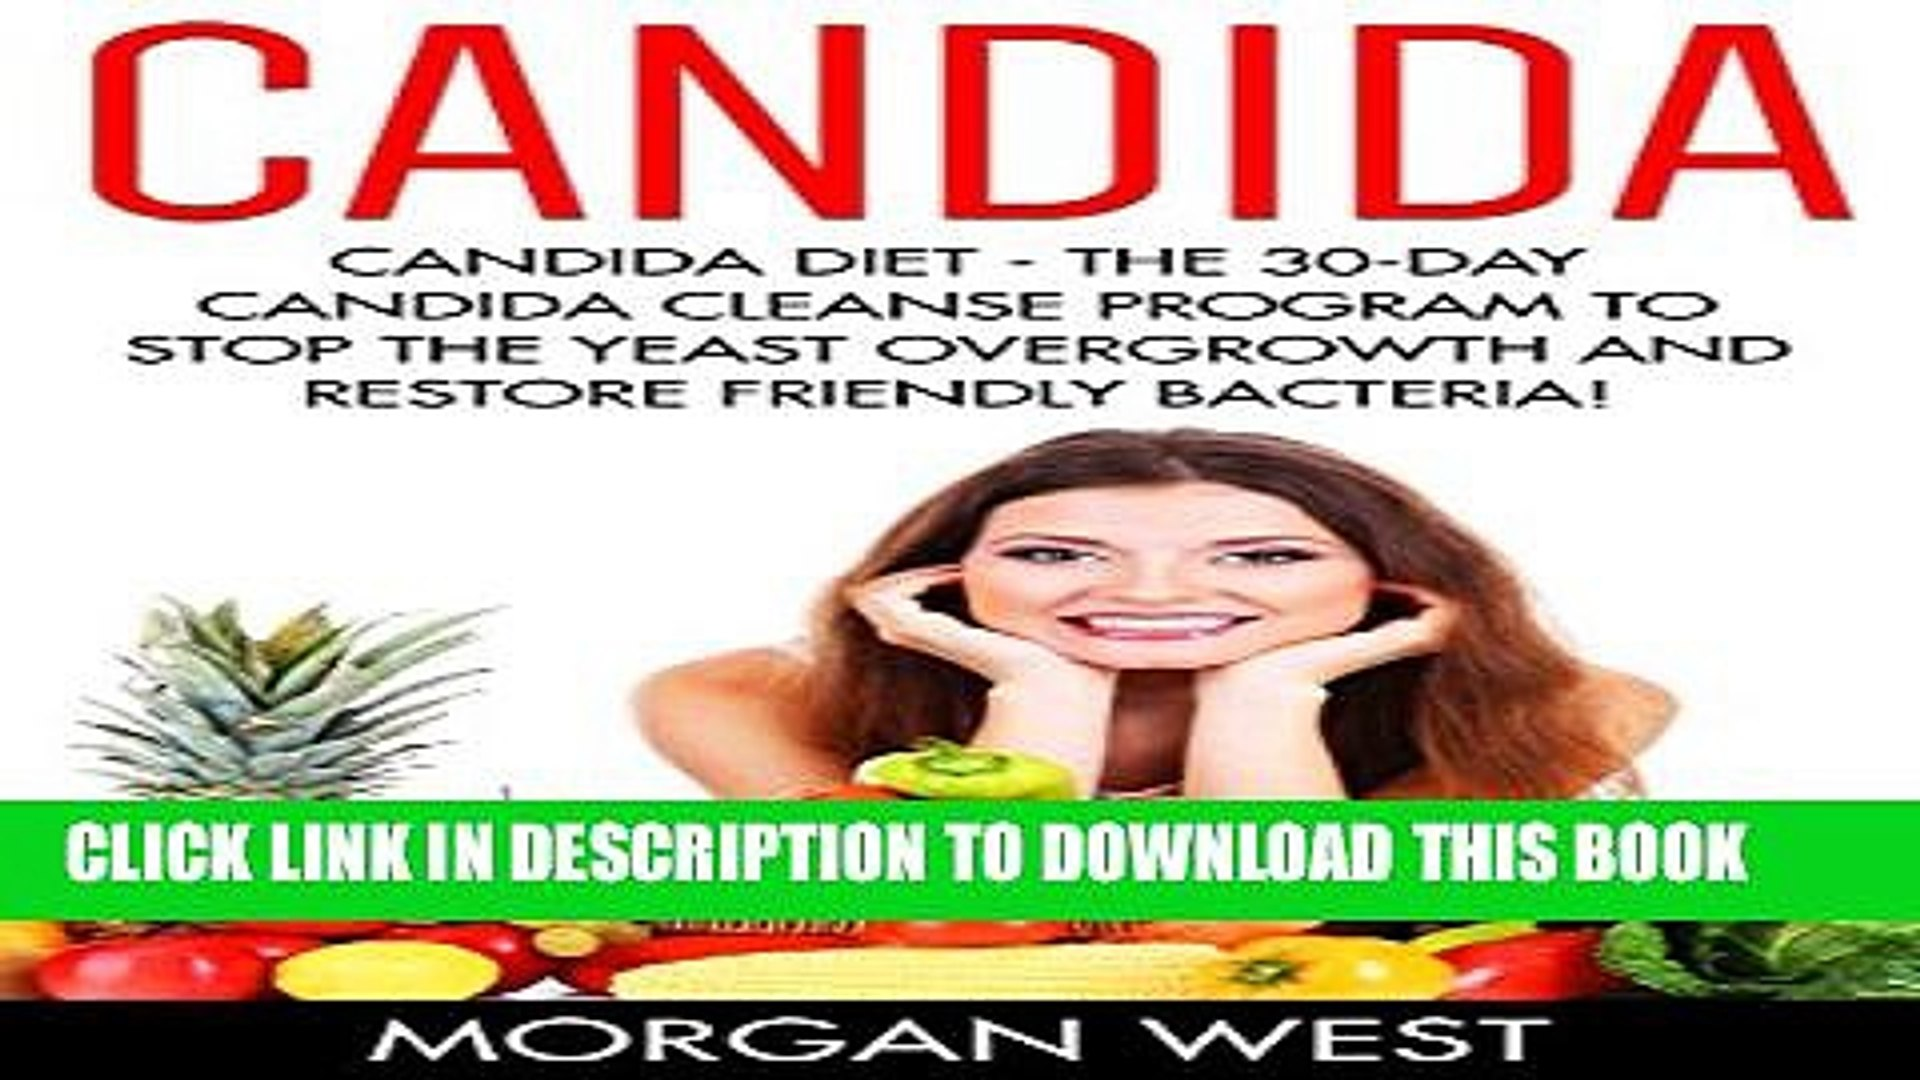 New Book Candida: Candida Diet - The 30-Day Candida Cleanse Program To Stop  The Yeast Overgrowth